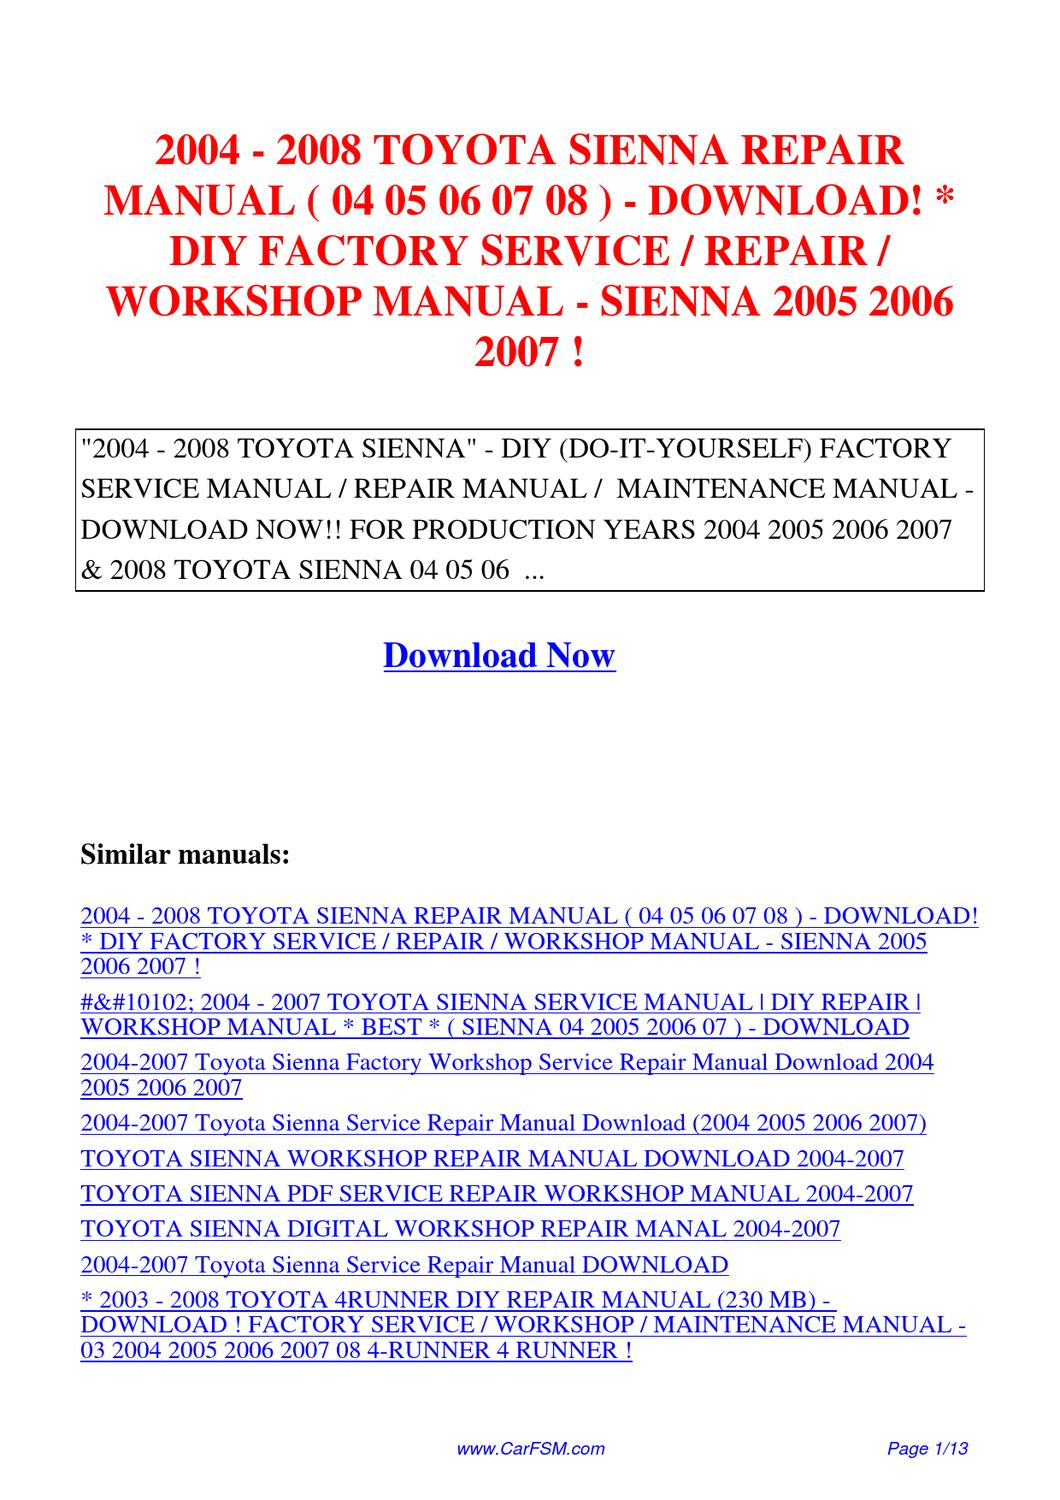 2004-2008_TOYOTA_SIENNA_REPAIR_MANUAL_04_05_06_07_08-DIY_FACTORY_SERVICE_REPAIR_WORKSHOP  by Hui Zhang - issuu